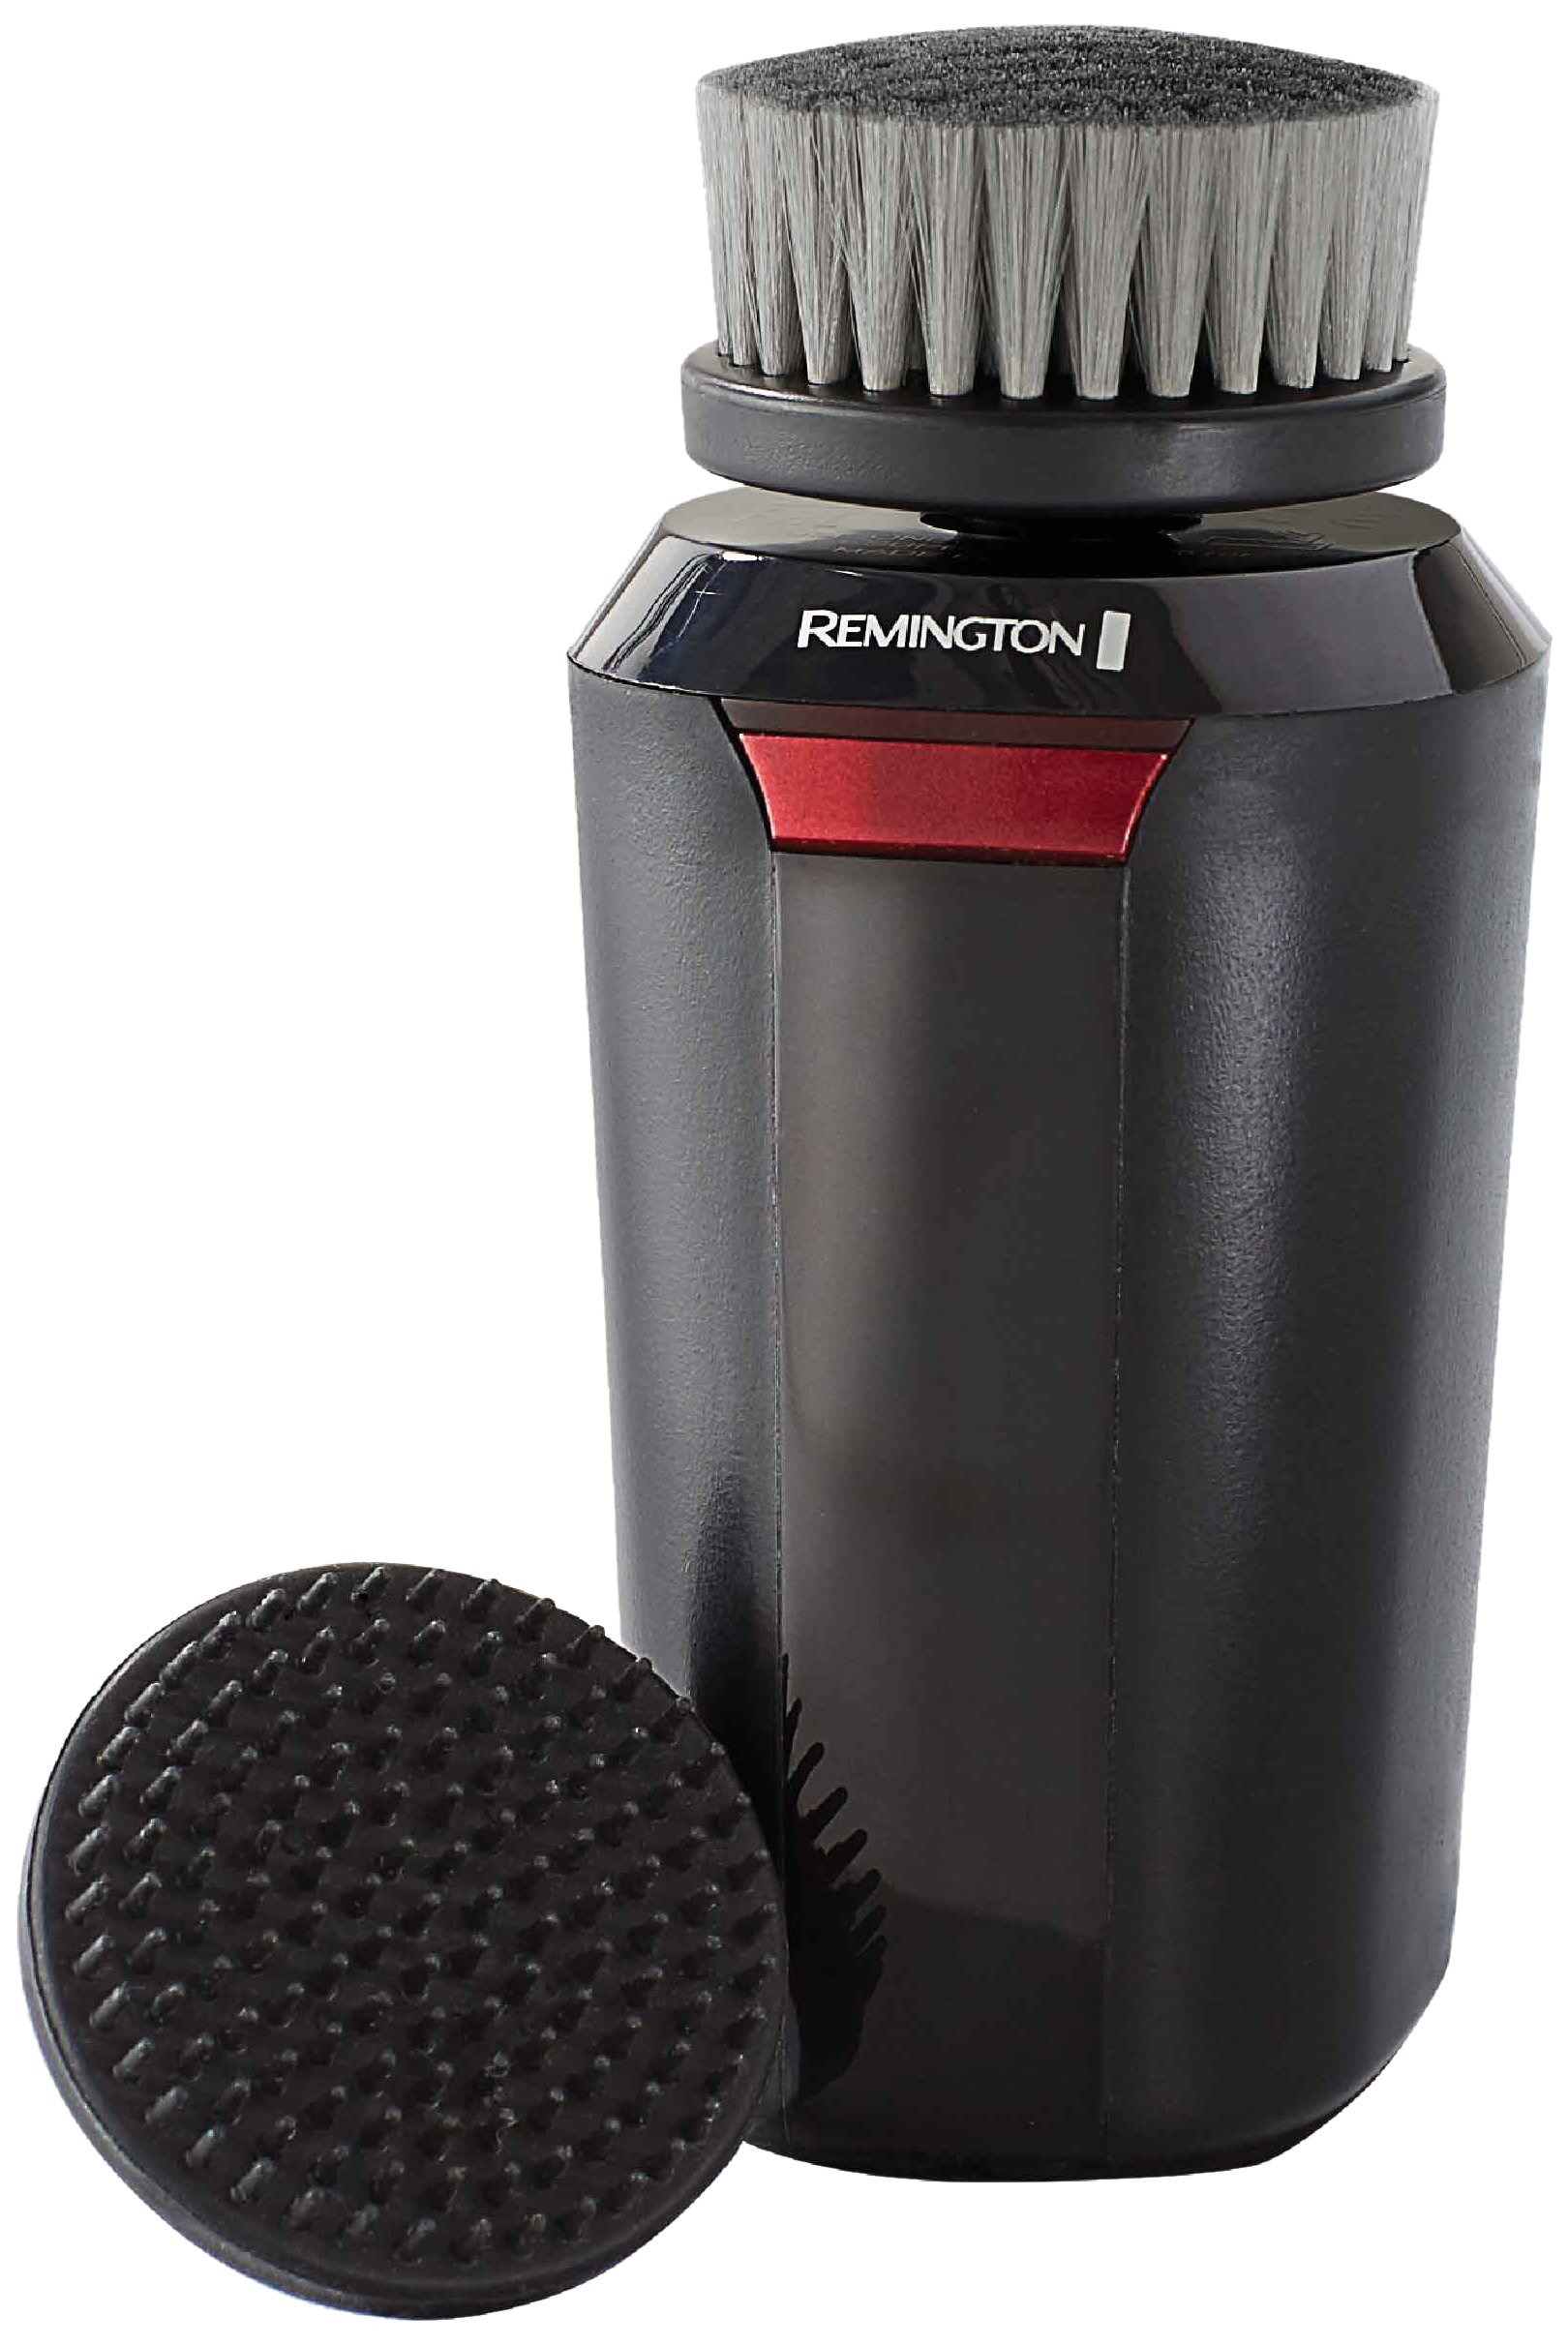 Remington Reveal Men's Compact Facial Cleansing Brush with Pre Shave and Charcoal Heads (FC1500B) by Remington